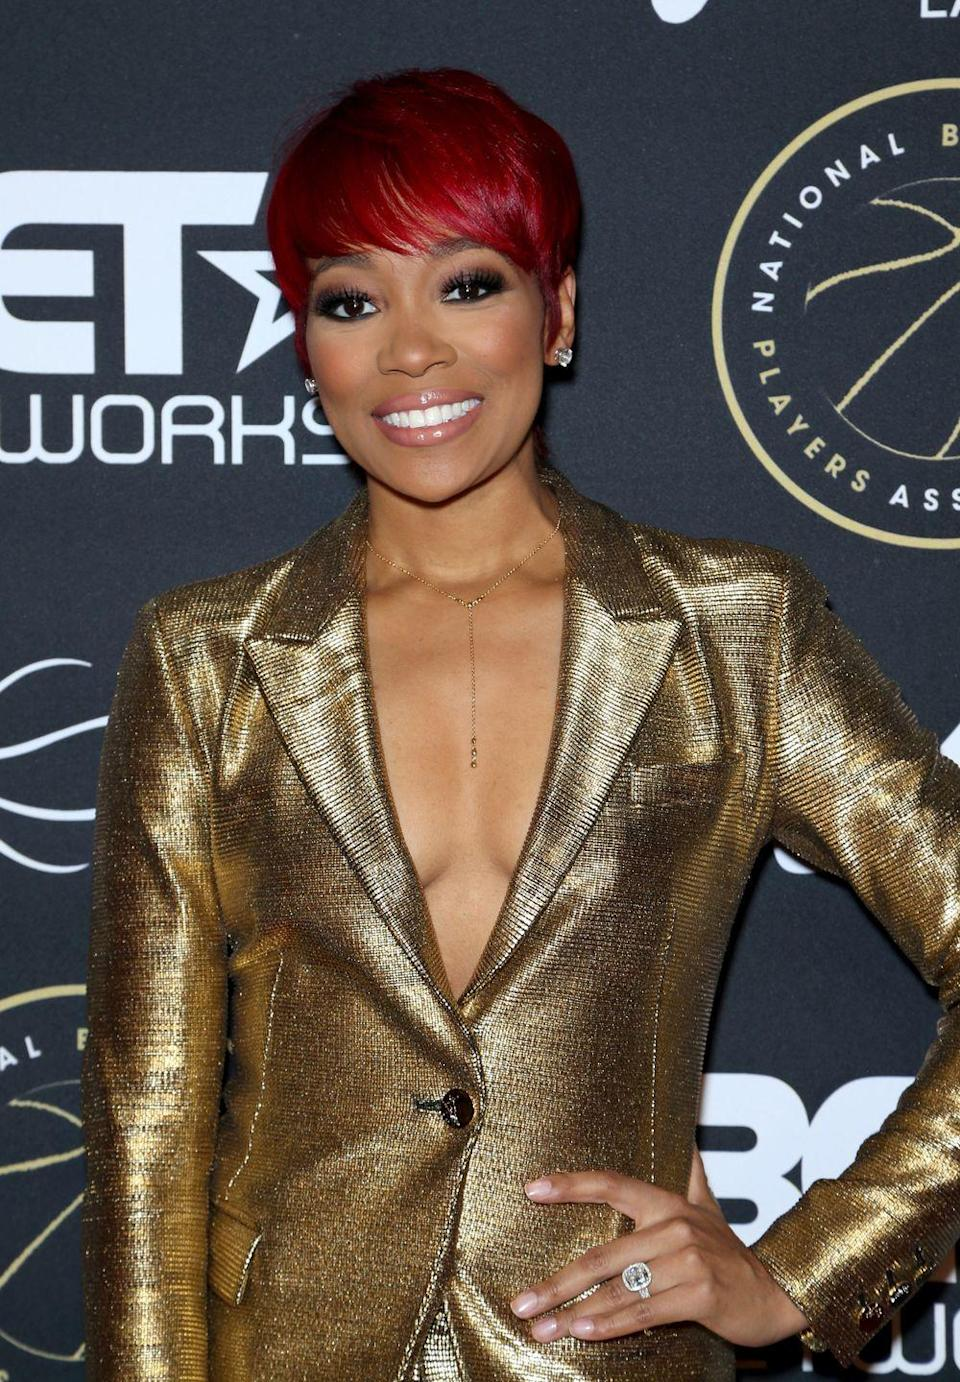 """<p>Singer <strong>Monica Brown</strong> looks striking in this <a href=""""https://www.goodhousekeeping.com/beauty/hair/g2441/red-hair-color-ideas/"""" rel=""""nofollow noopener"""" target=""""_blank"""" data-ylk=""""slk:bright red"""" class=""""link rapid-noclick-resp"""">bright red</a> short bolw haircut with <a href=""""https://www.goodhousekeeping.com/beauty/hair/g34731514/curtain-bangs-ideas/"""" rel=""""nofollow noopener"""" target=""""_blank"""" data-ylk=""""slk:brow-skimming bangs"""" class=""""link rapid-noclick-resp"""">brow-skimming bangs</a>.</p>"""